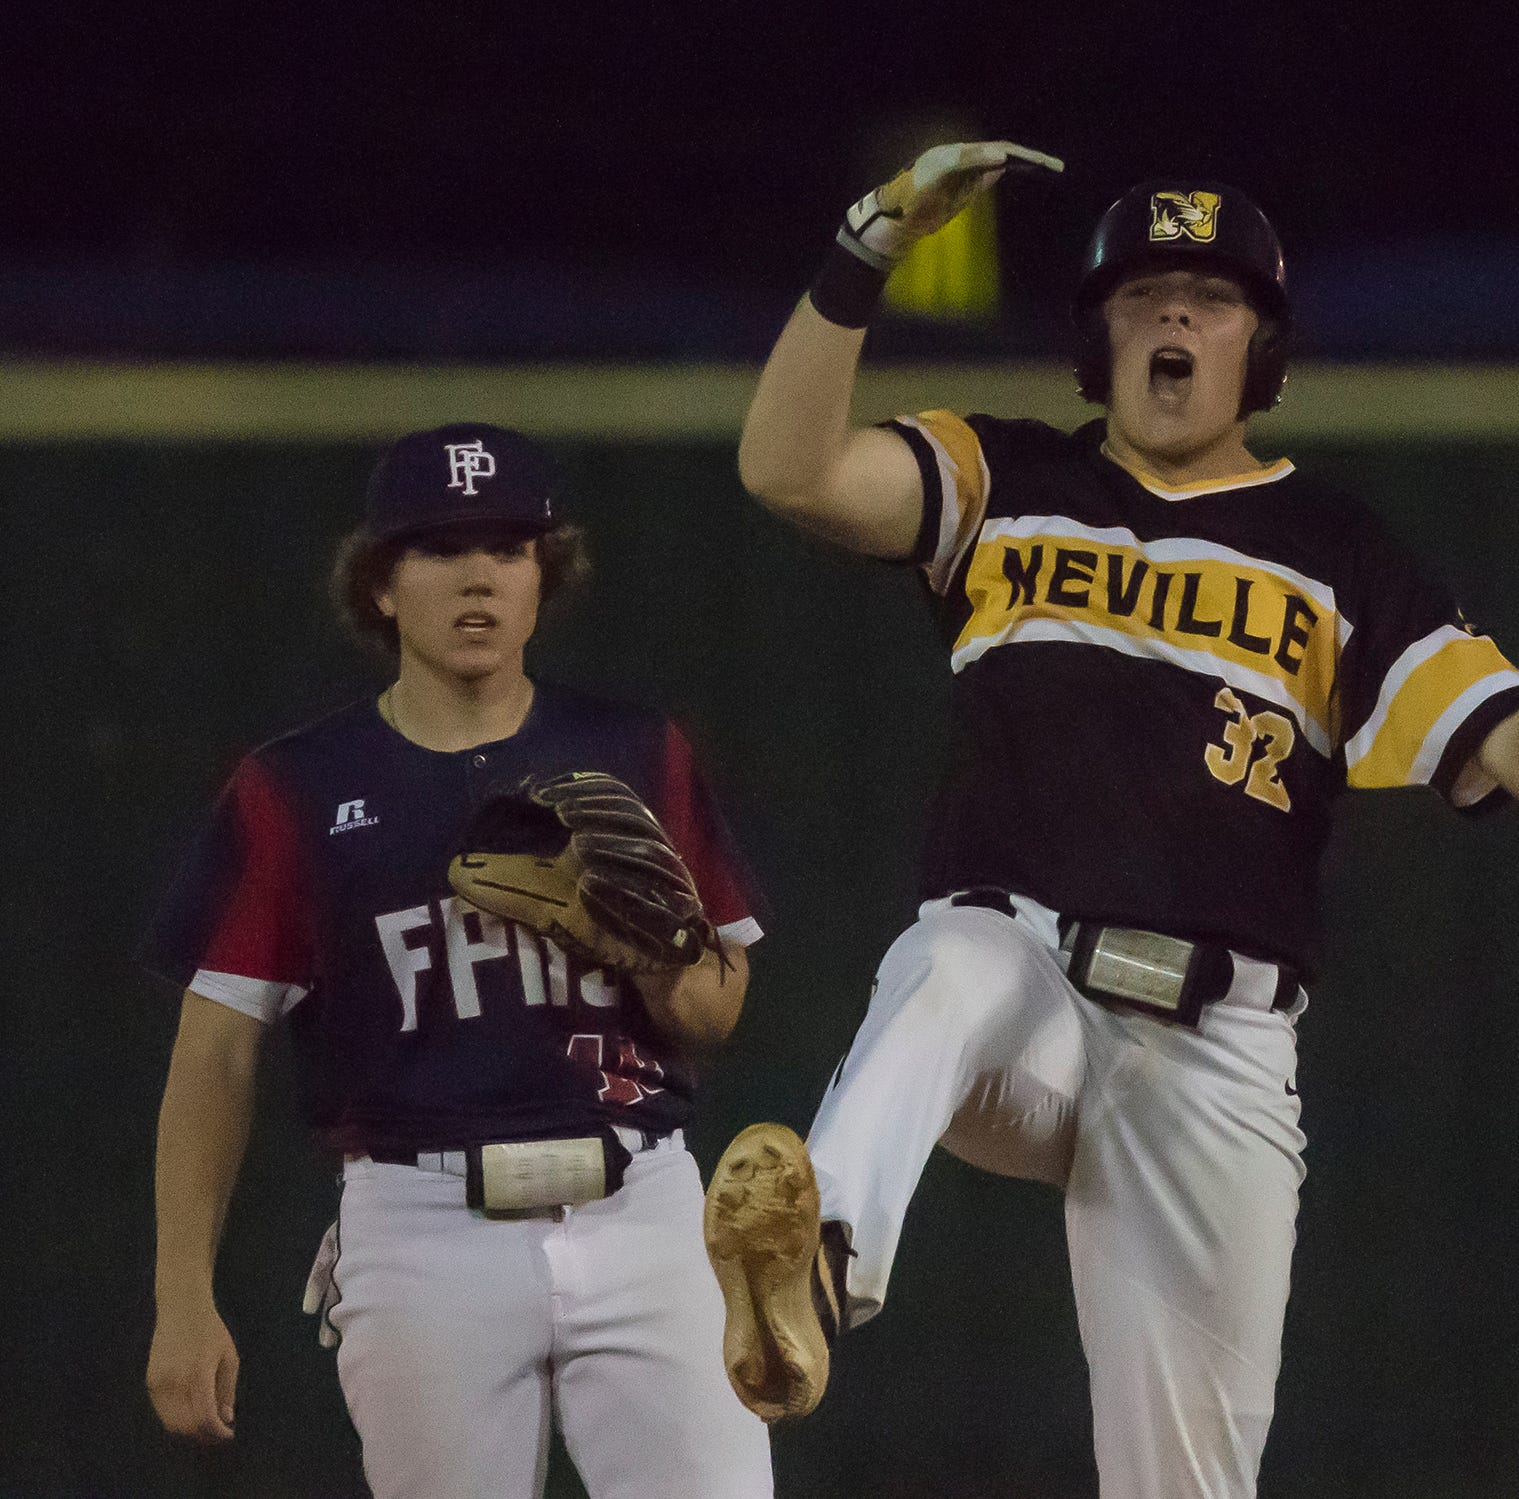 Neville's Parker Fugler (32) celebrates at second base after hitting a double in the bottom of the 7th to move a runner into scoring position during the Class 4A first round playoff game against Franklin Parish at Embanato Field in Monroe, La. on April 23. Neville would win with 5-4 in the bottom of the 7th.